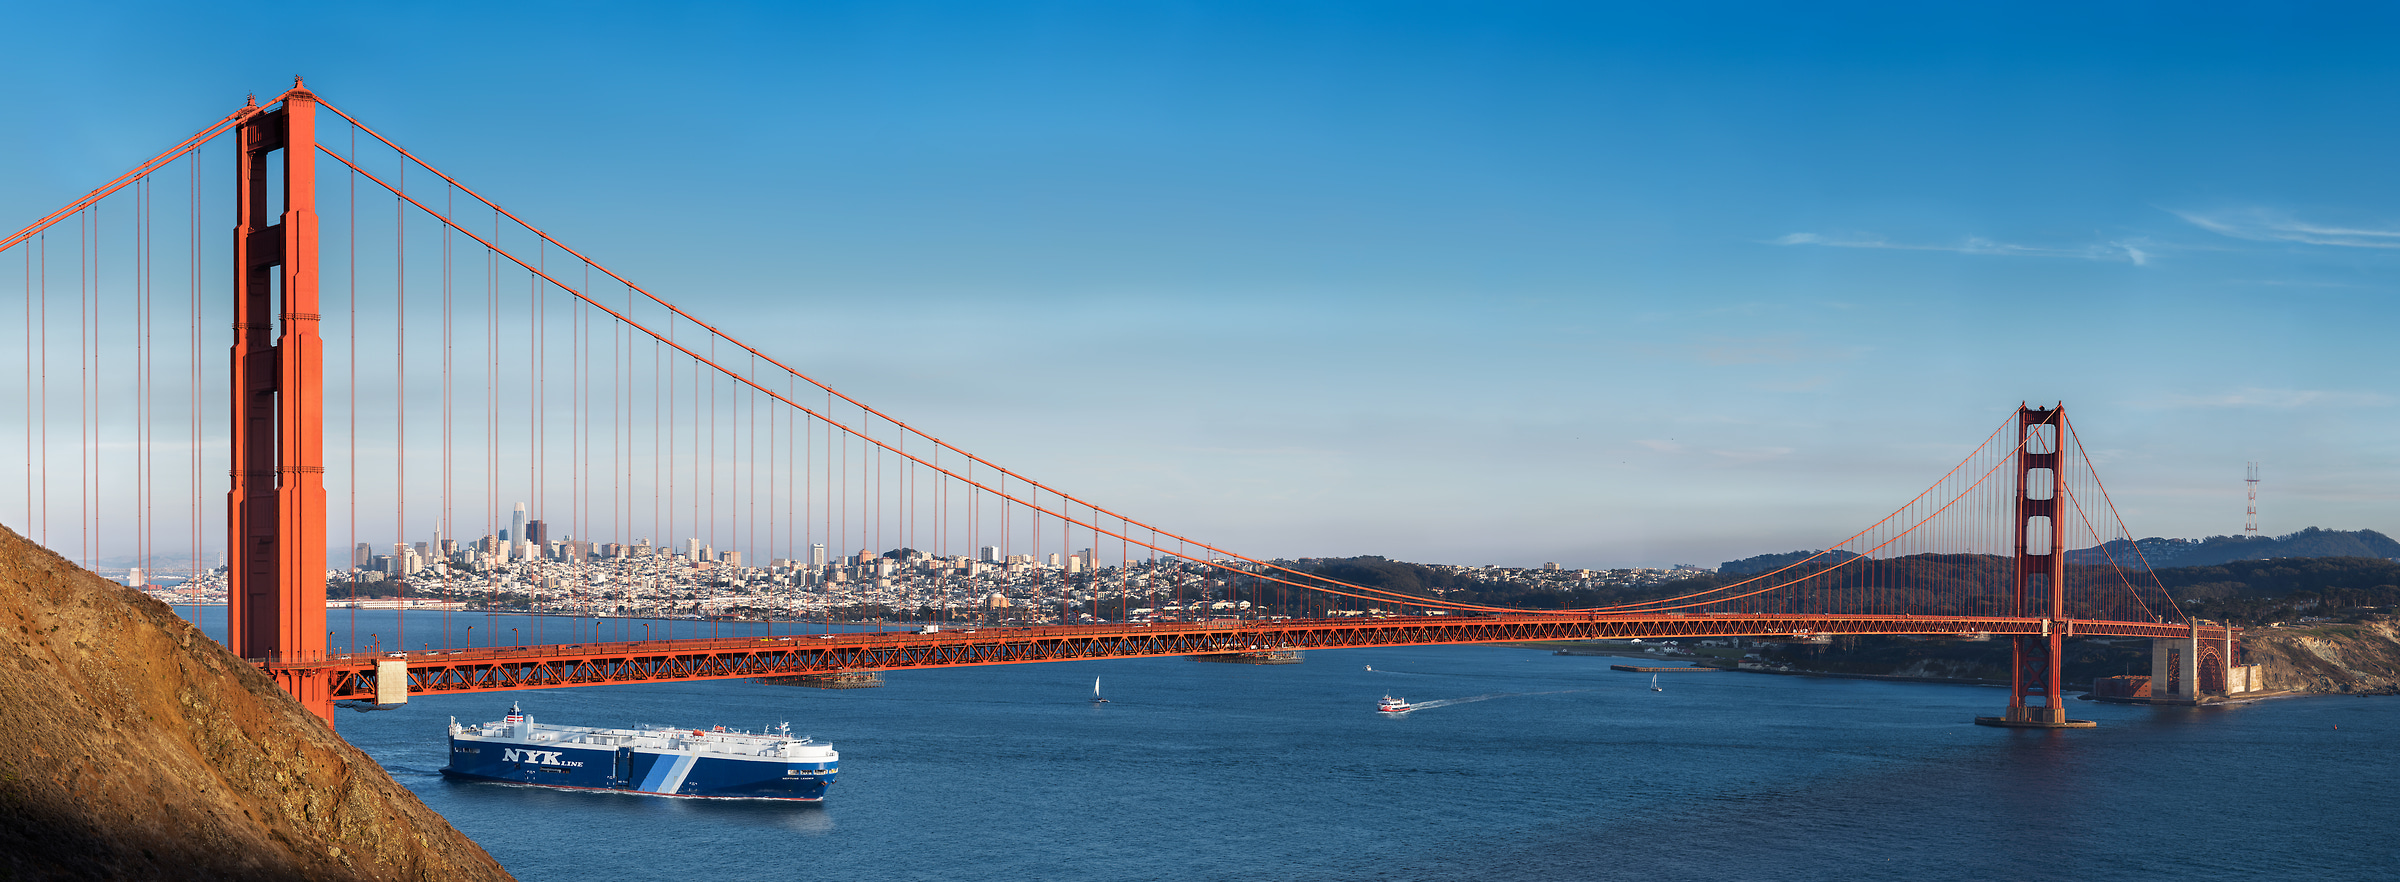 698 megapixels! A very high resolution, large-format VAST photo print of the Golden Gate Bridge in front of the San Francisco skyline on a blue sky day; photograph created by Jim Tarpo in Mill Valley, California